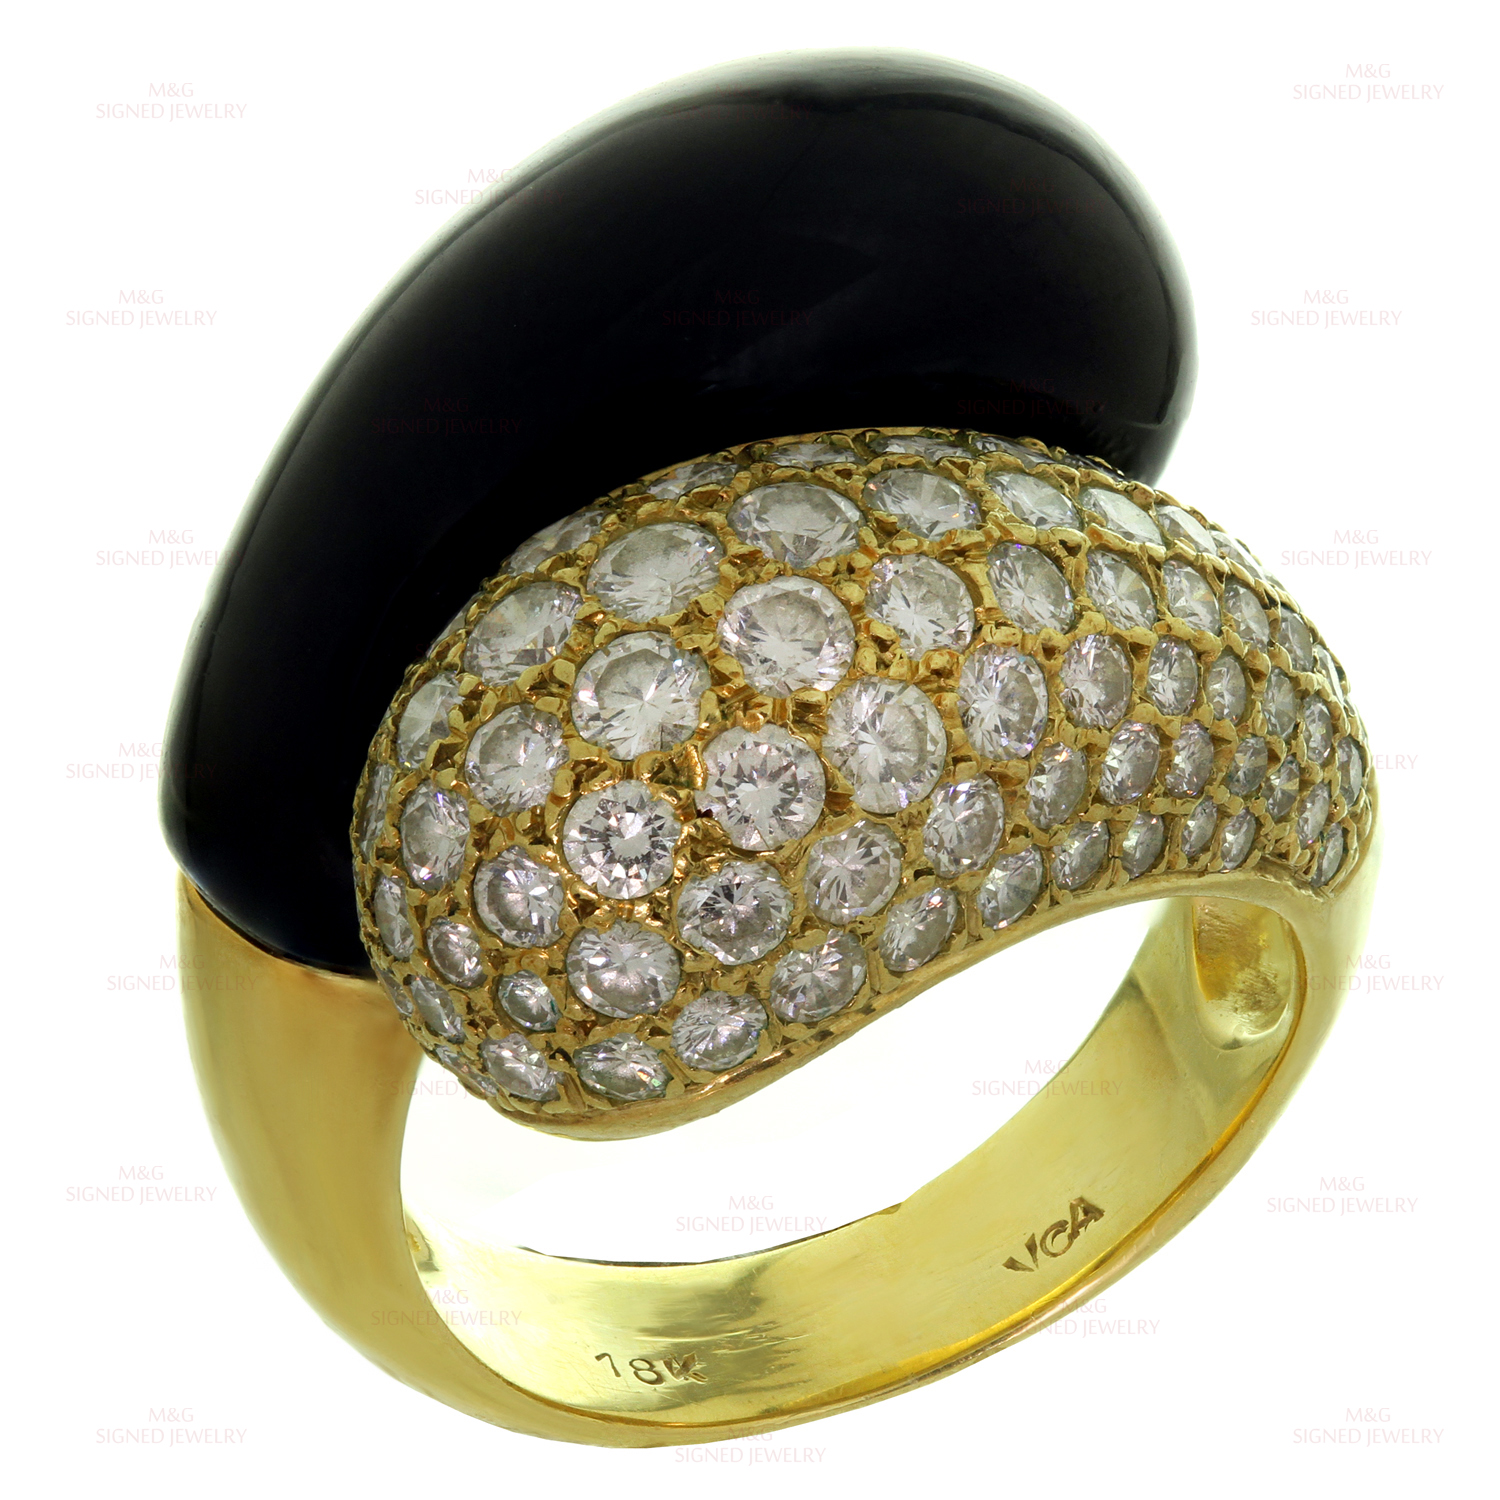 VAN CLEEF & ARPELS Diamond Black Onyx 18k Yellow Gold Ring